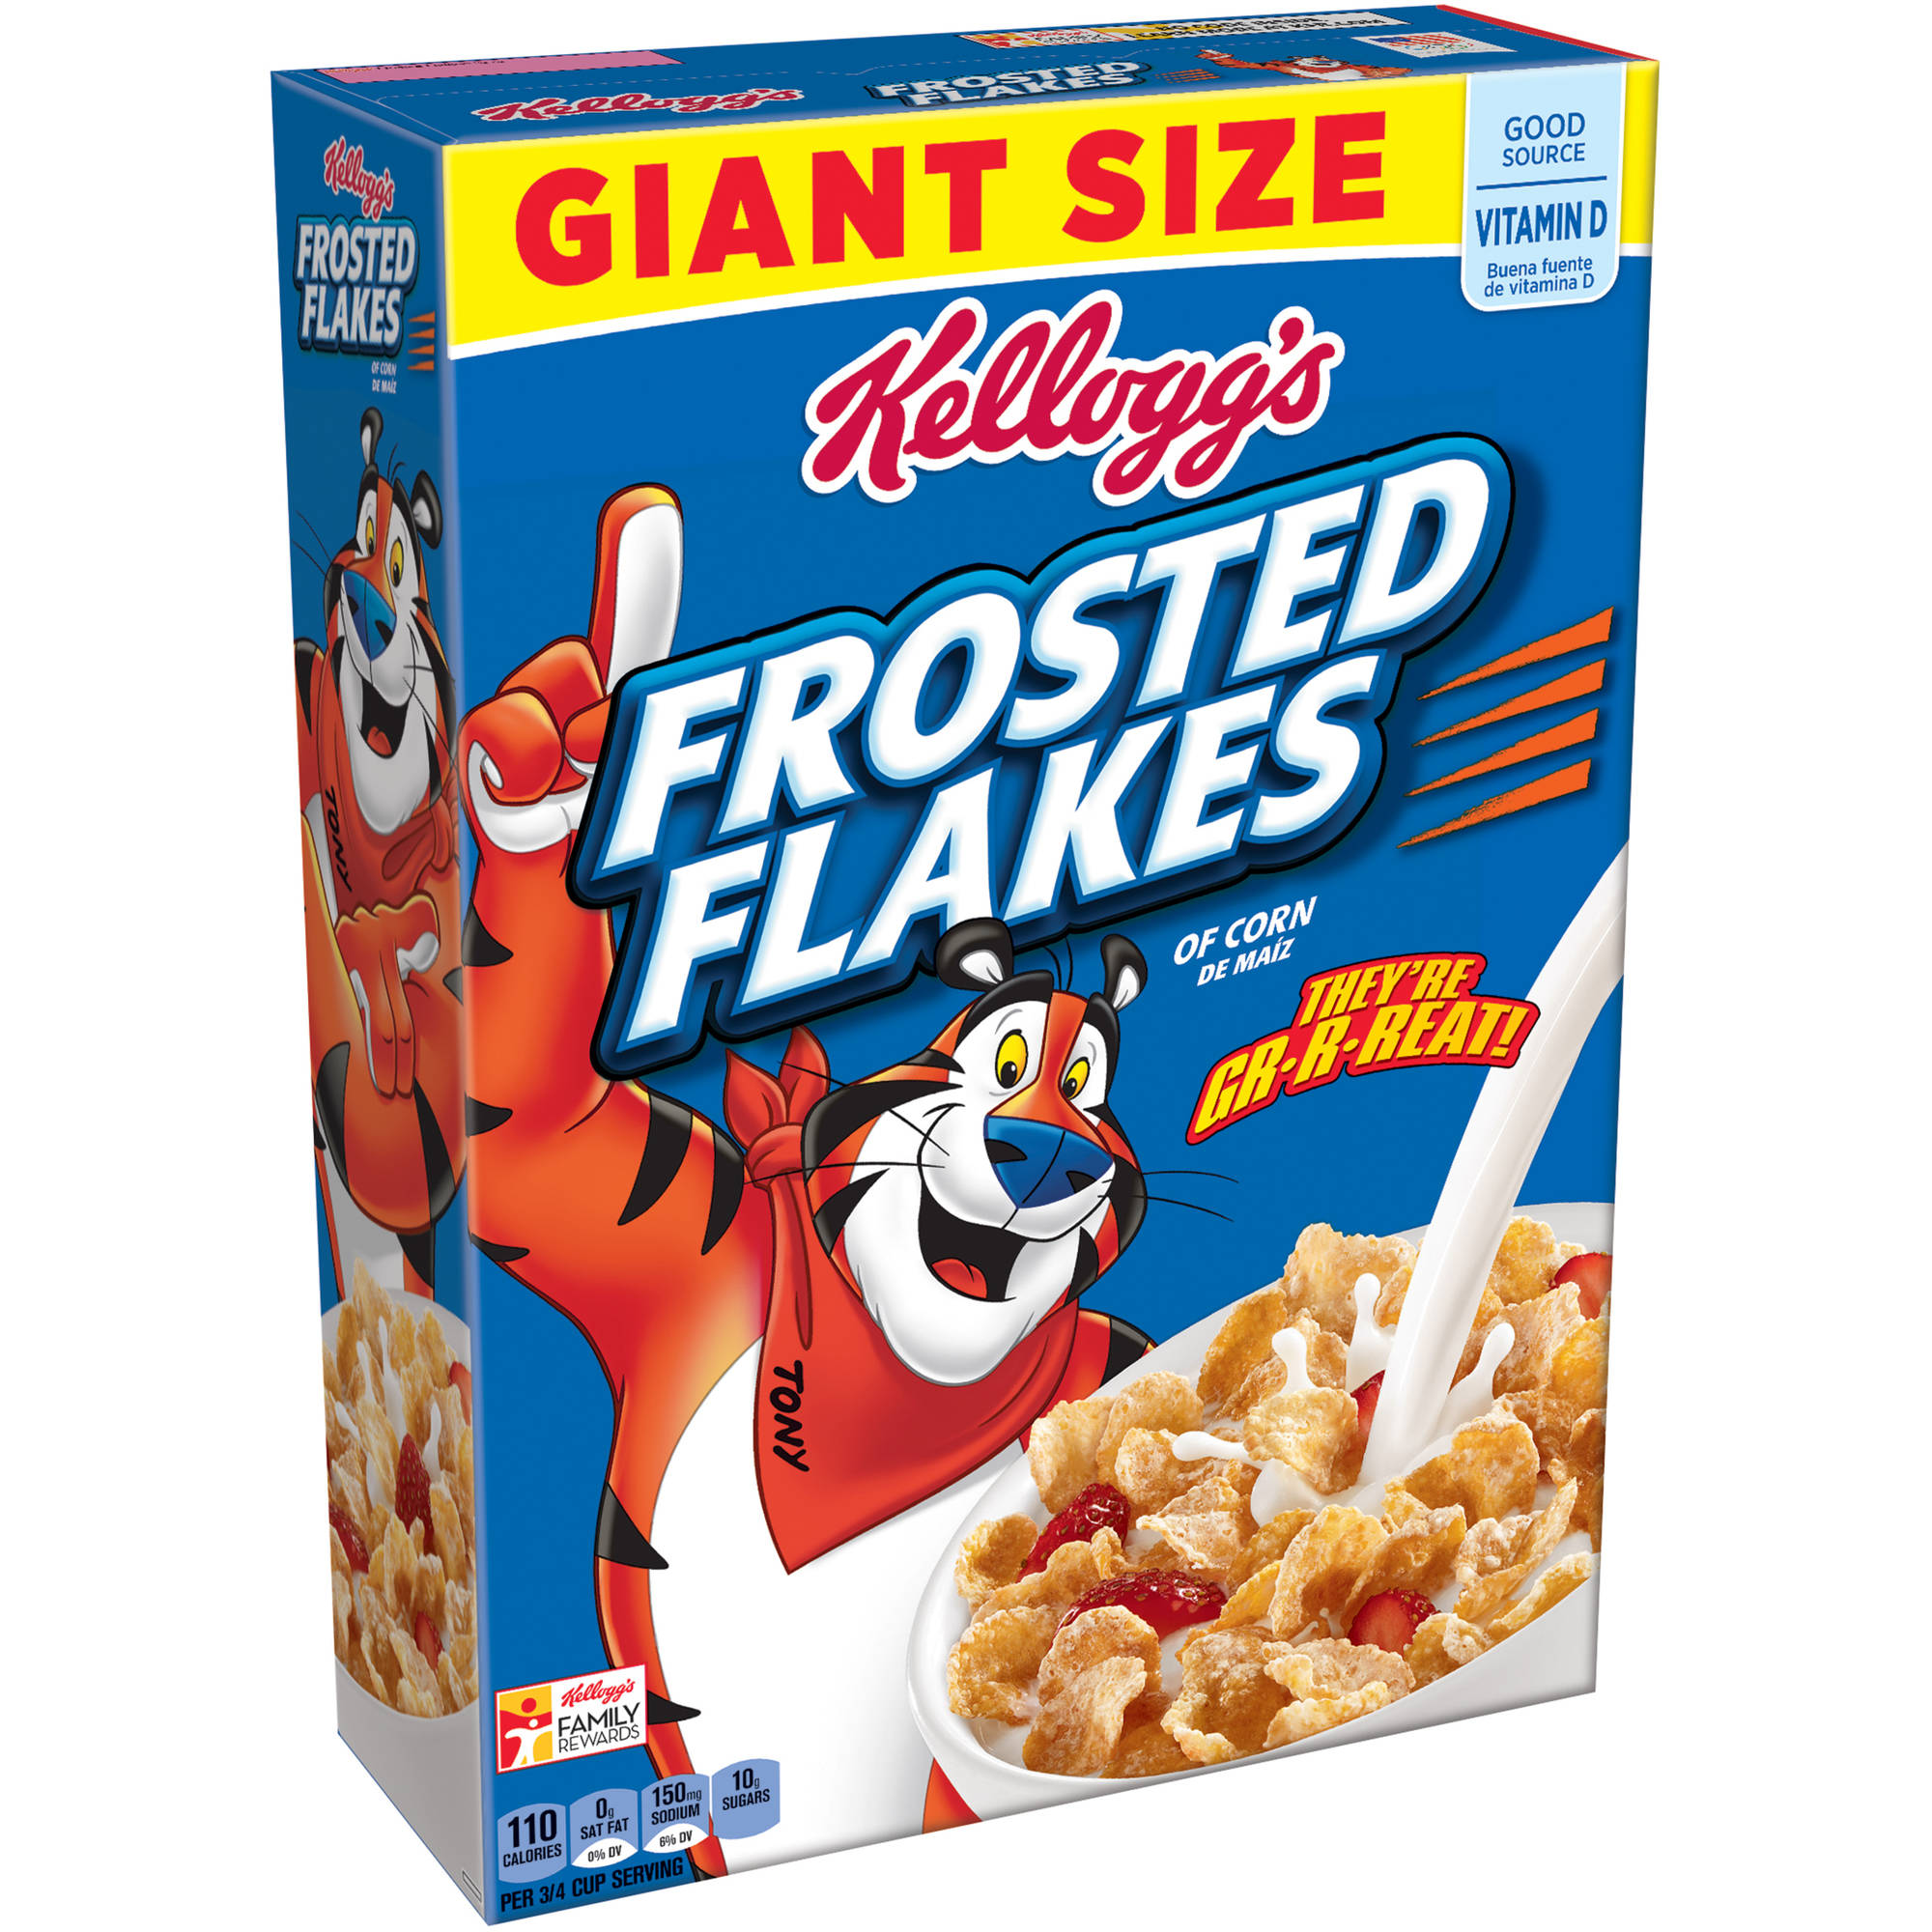 Kellogg's Frosted Flakes Cereal Giant Size, 33 ounce